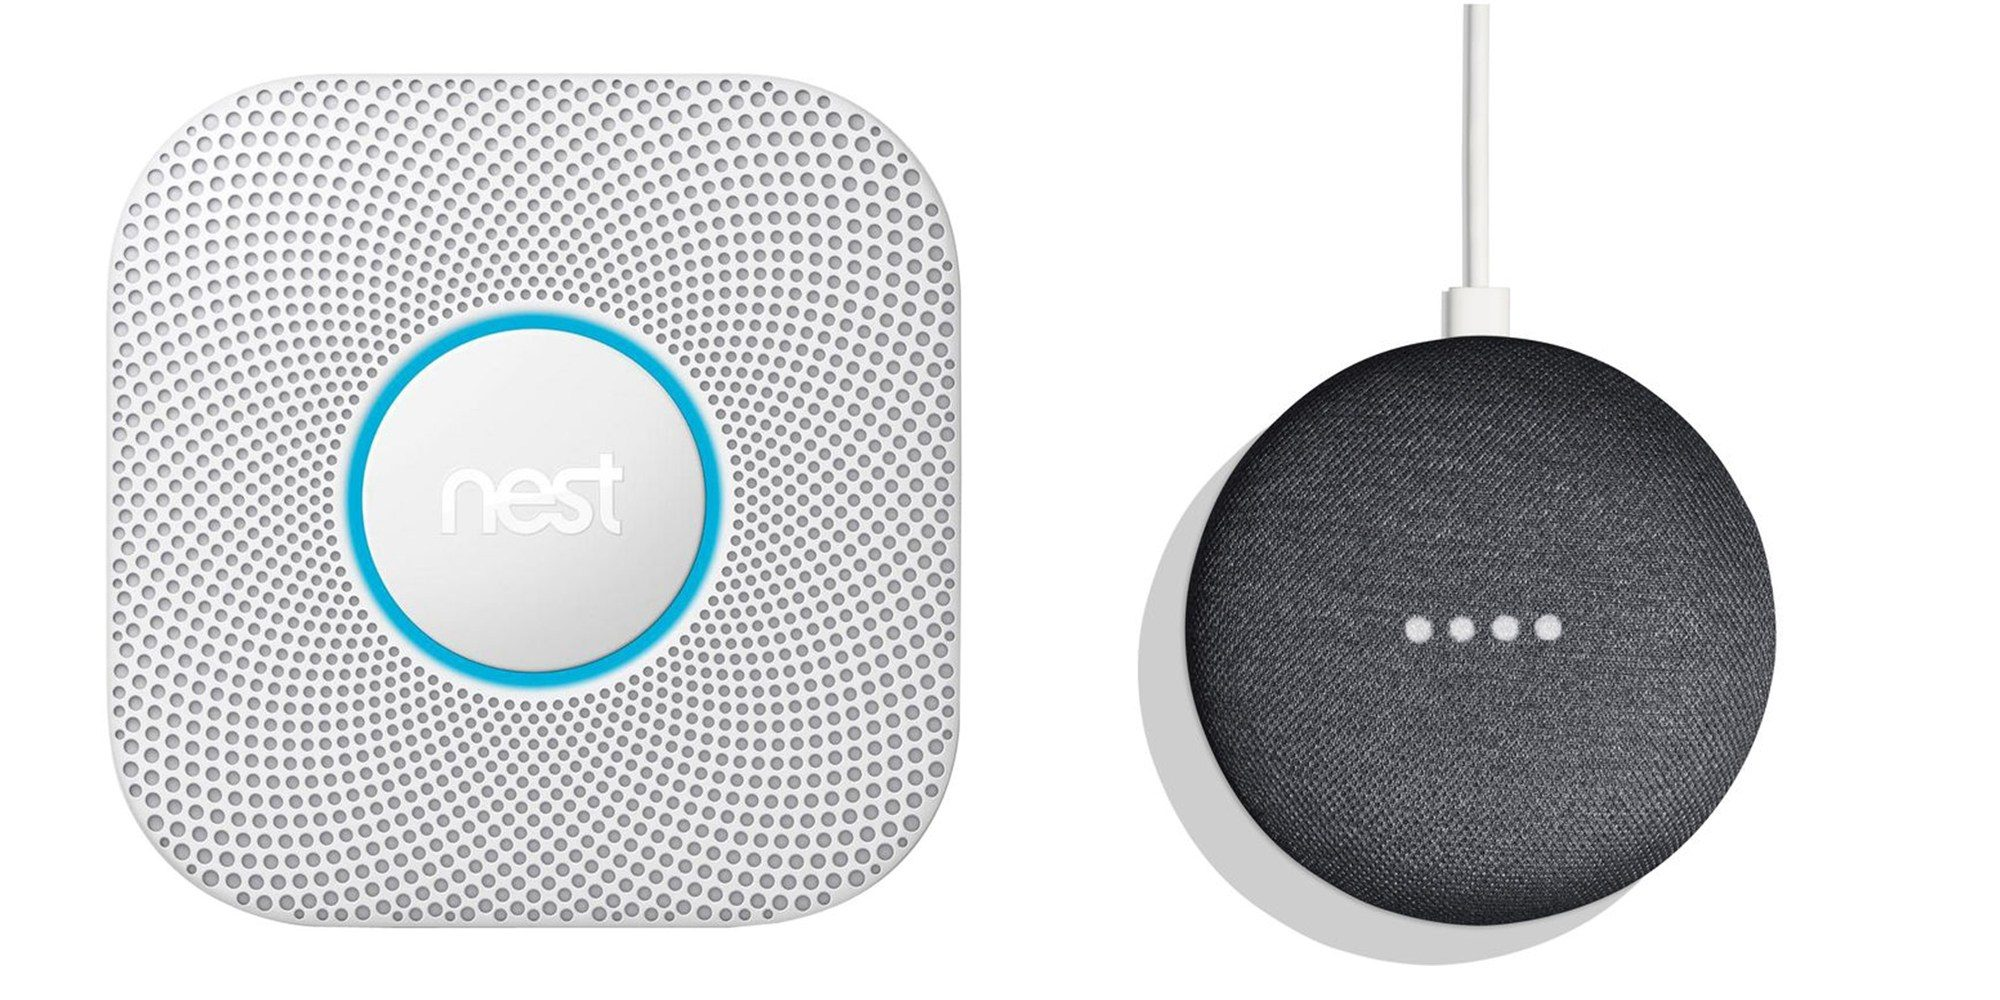 9to5Toys Letzter Anruf: Nest Protect & Home Mini 119 $, Nest X Yale Smart Lock 211, TCL 43-Zoll Roku HDTV 170 $, mehr